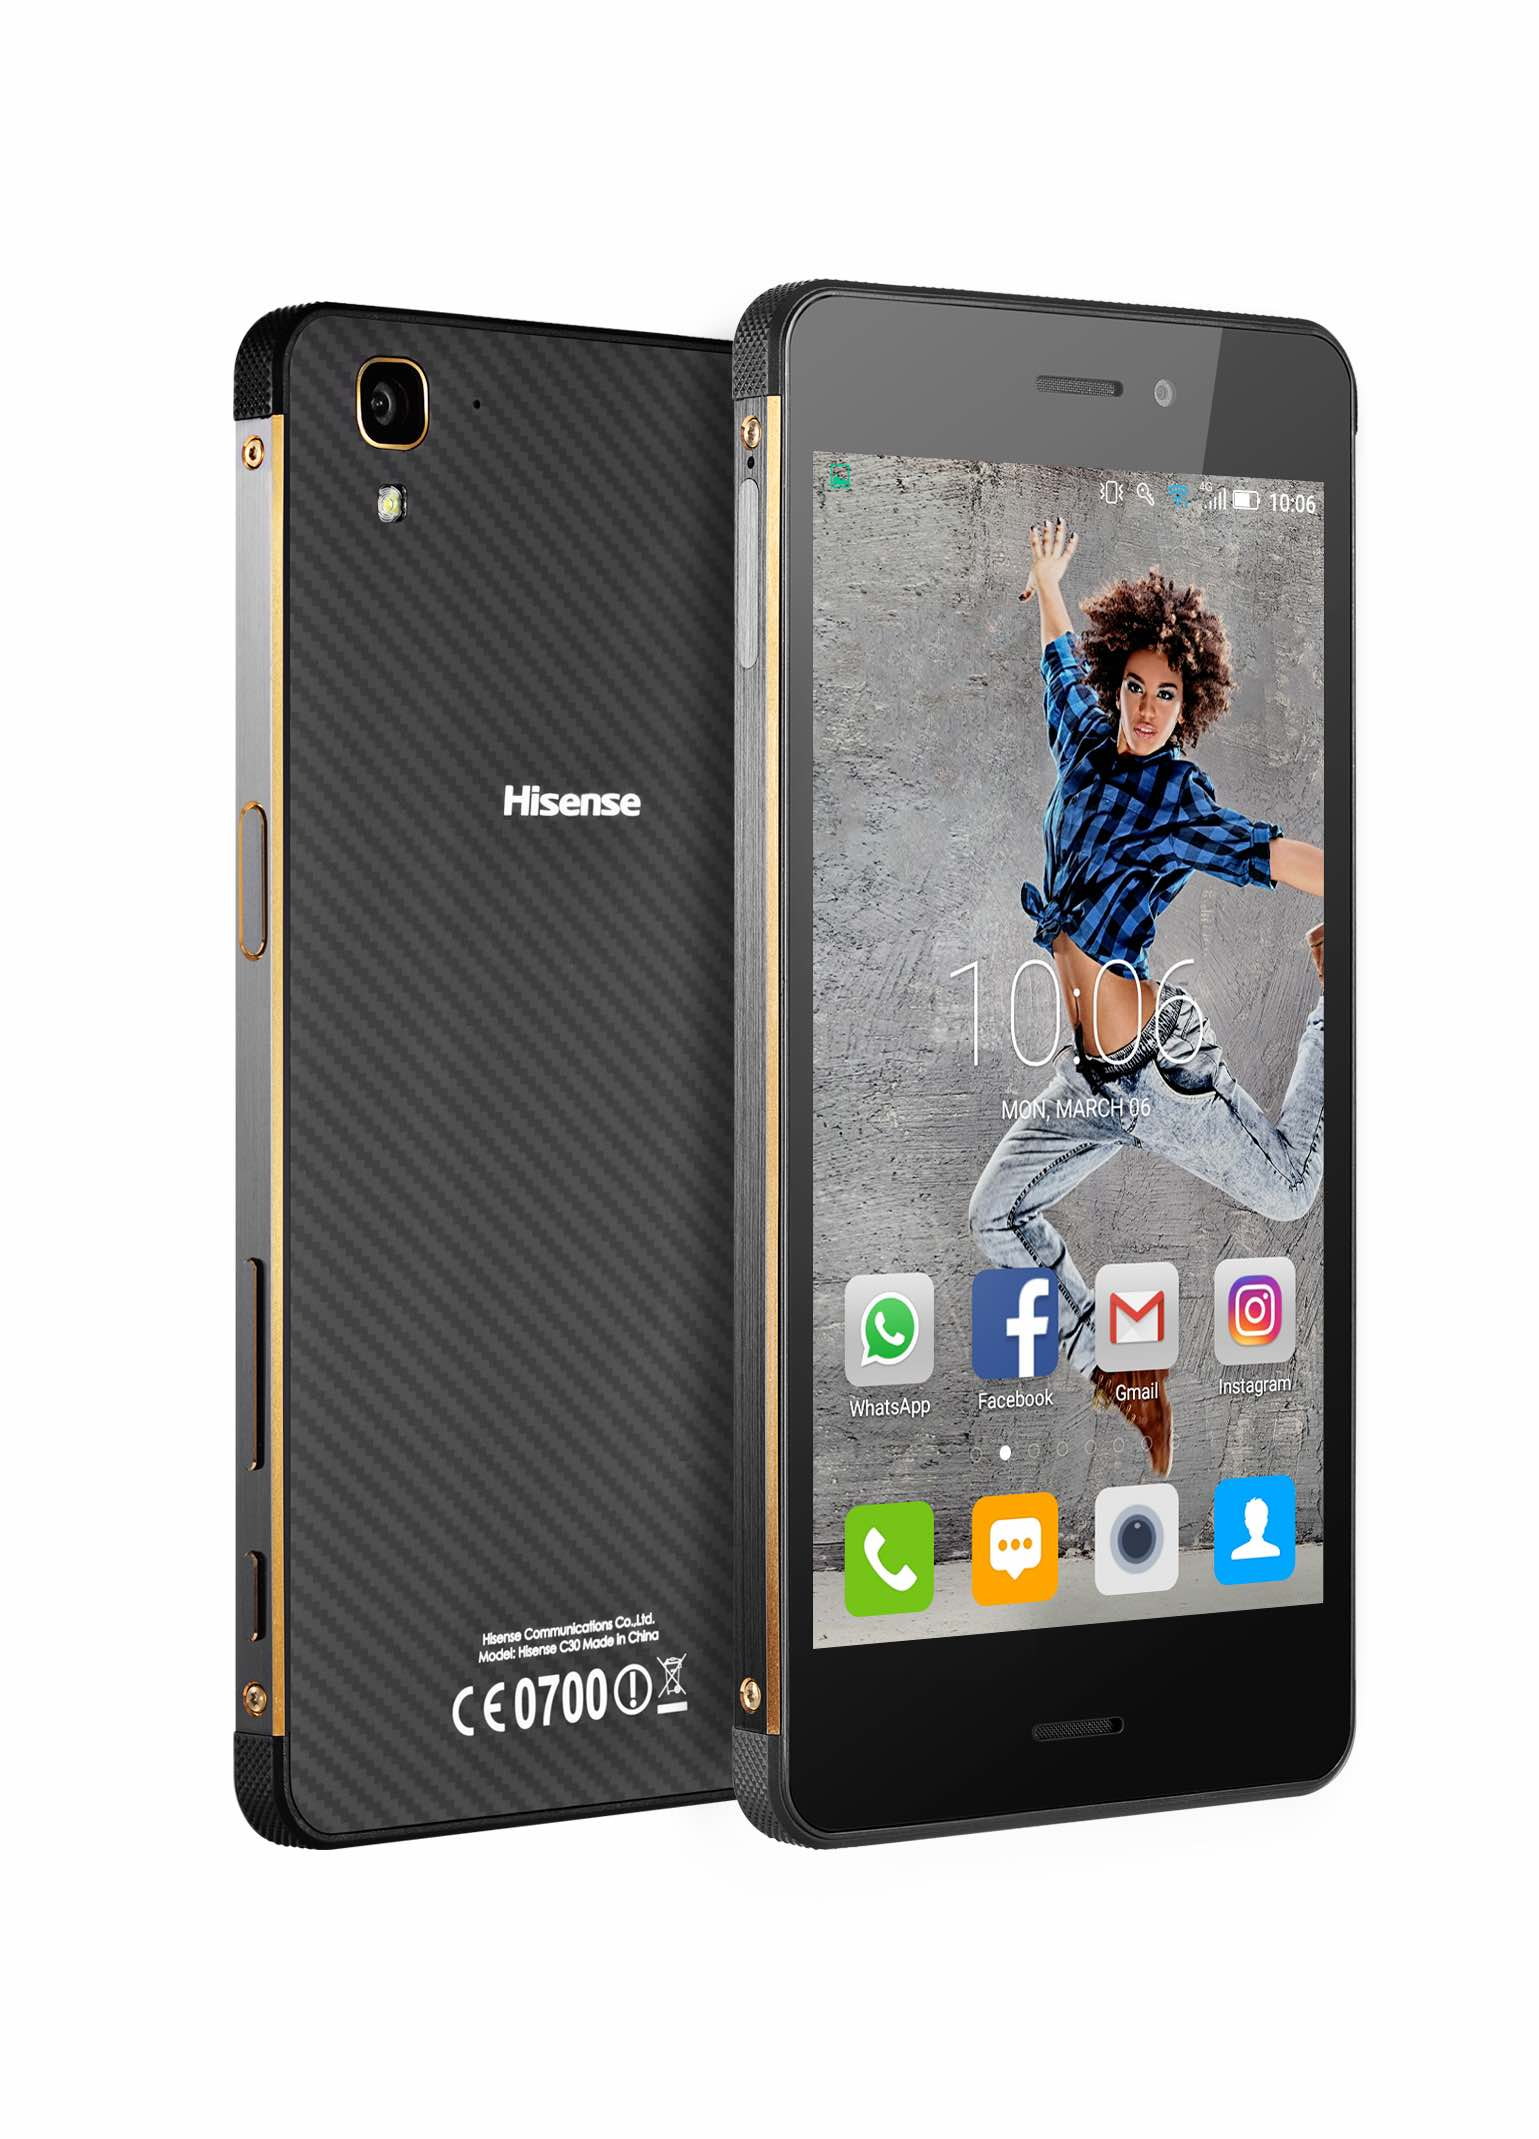 Check out the new Hisense C30 Rock Smartphone